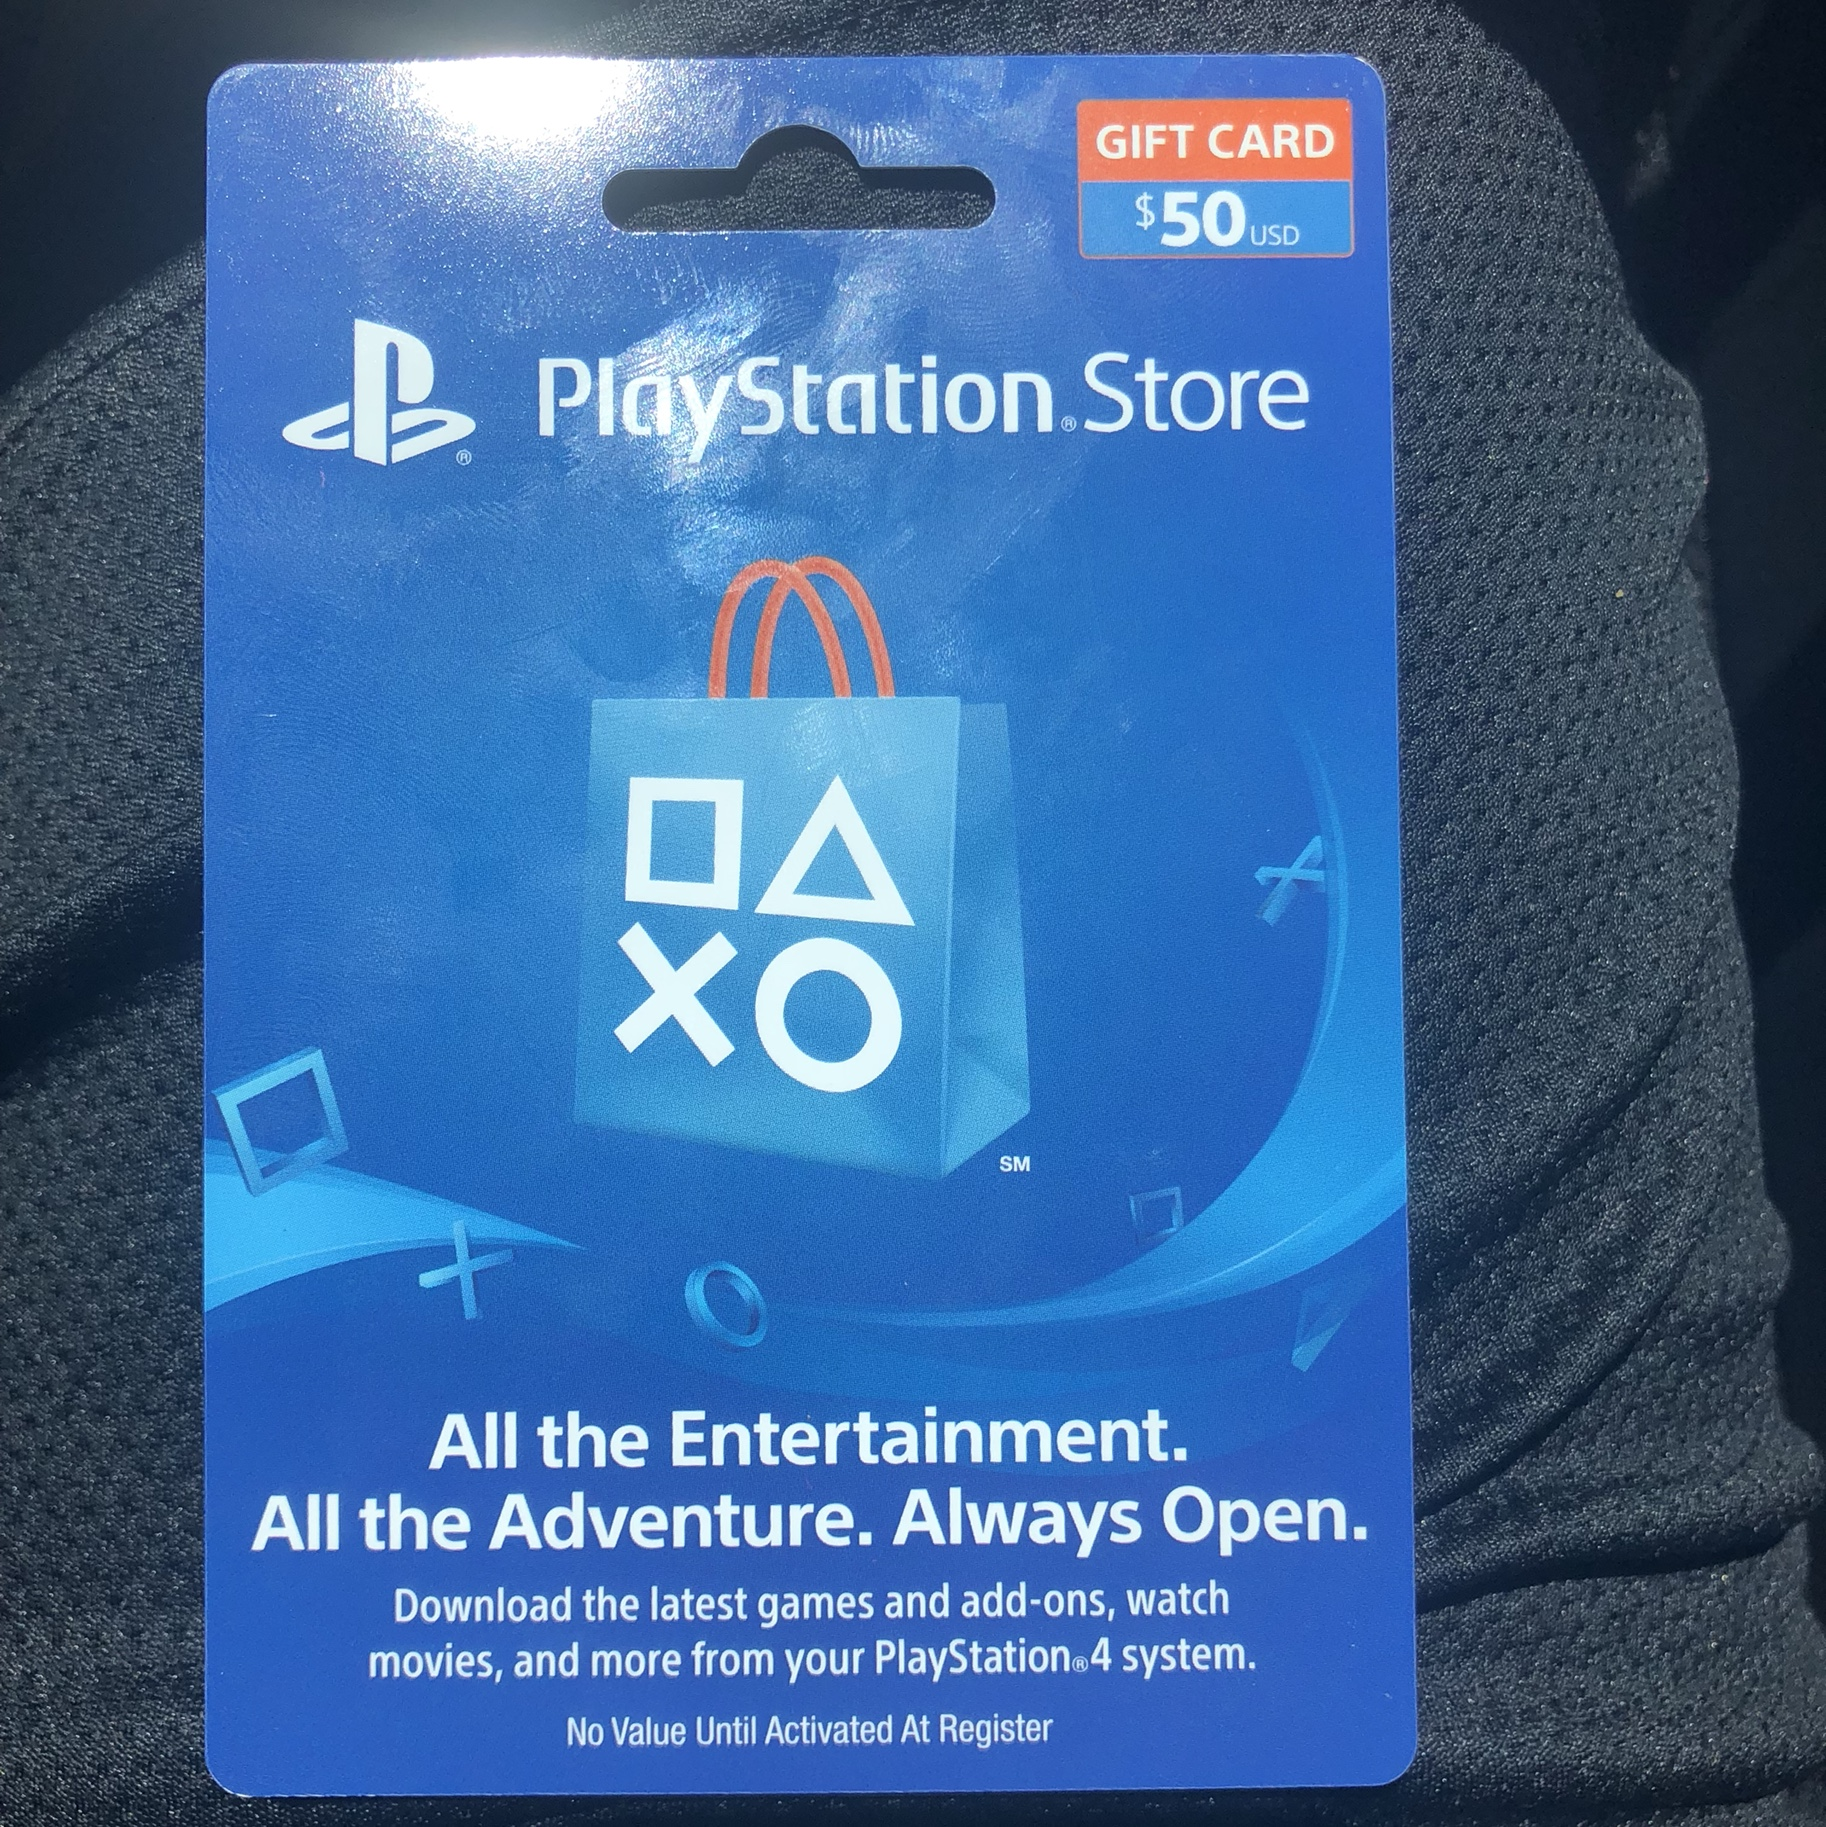 $50 PSN Gift Card 15% Off - PlayStation Store Gift Cards